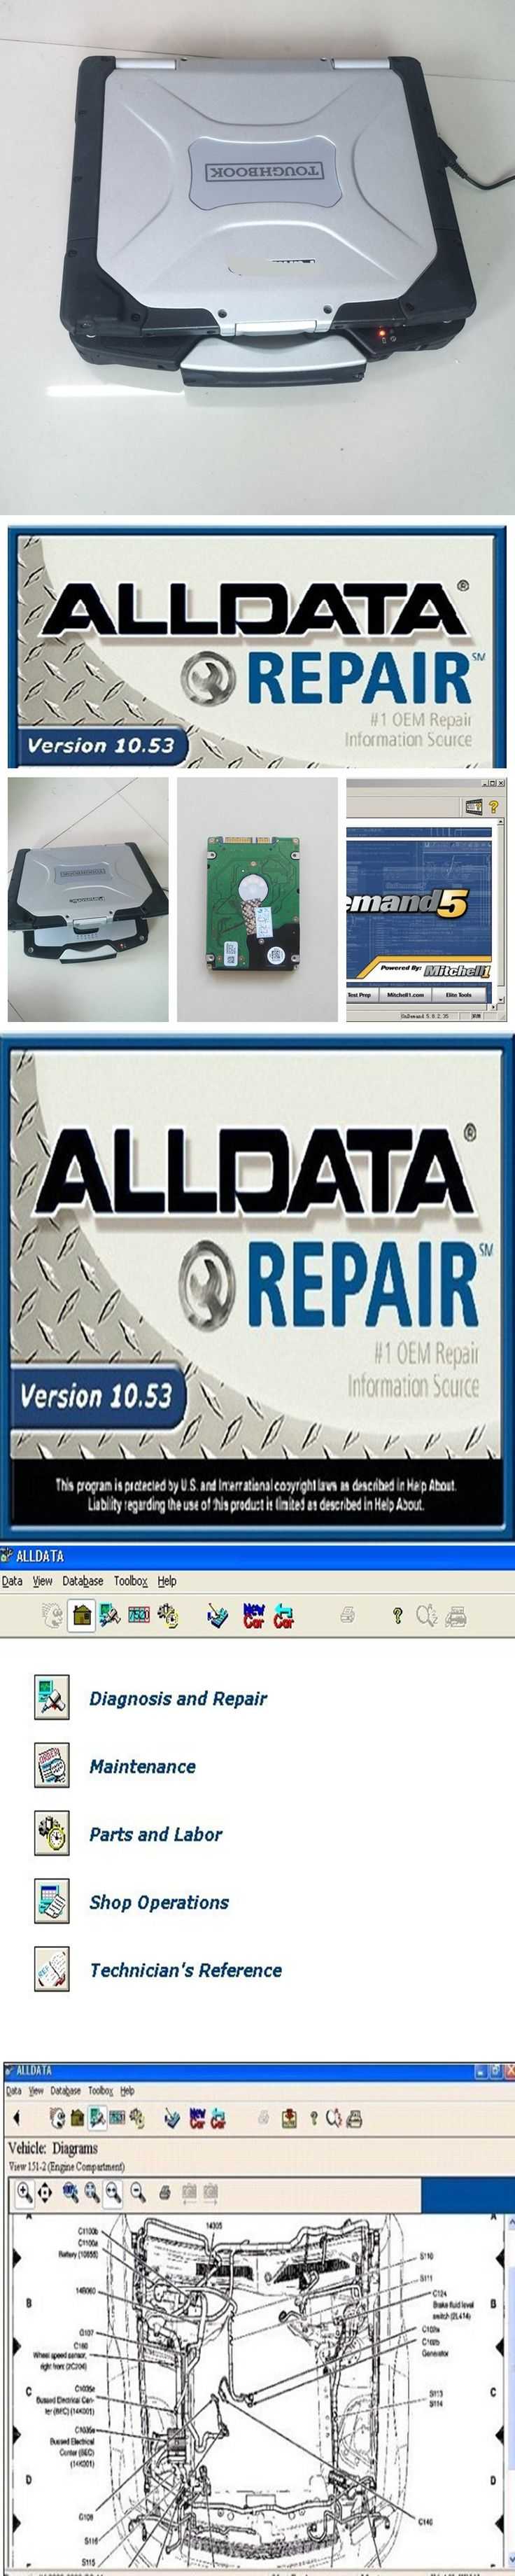 v10.53 alldata and mitchell software installed in diagnostic laptop pc cf-30 toughbook (4gb ram) work for all car repair